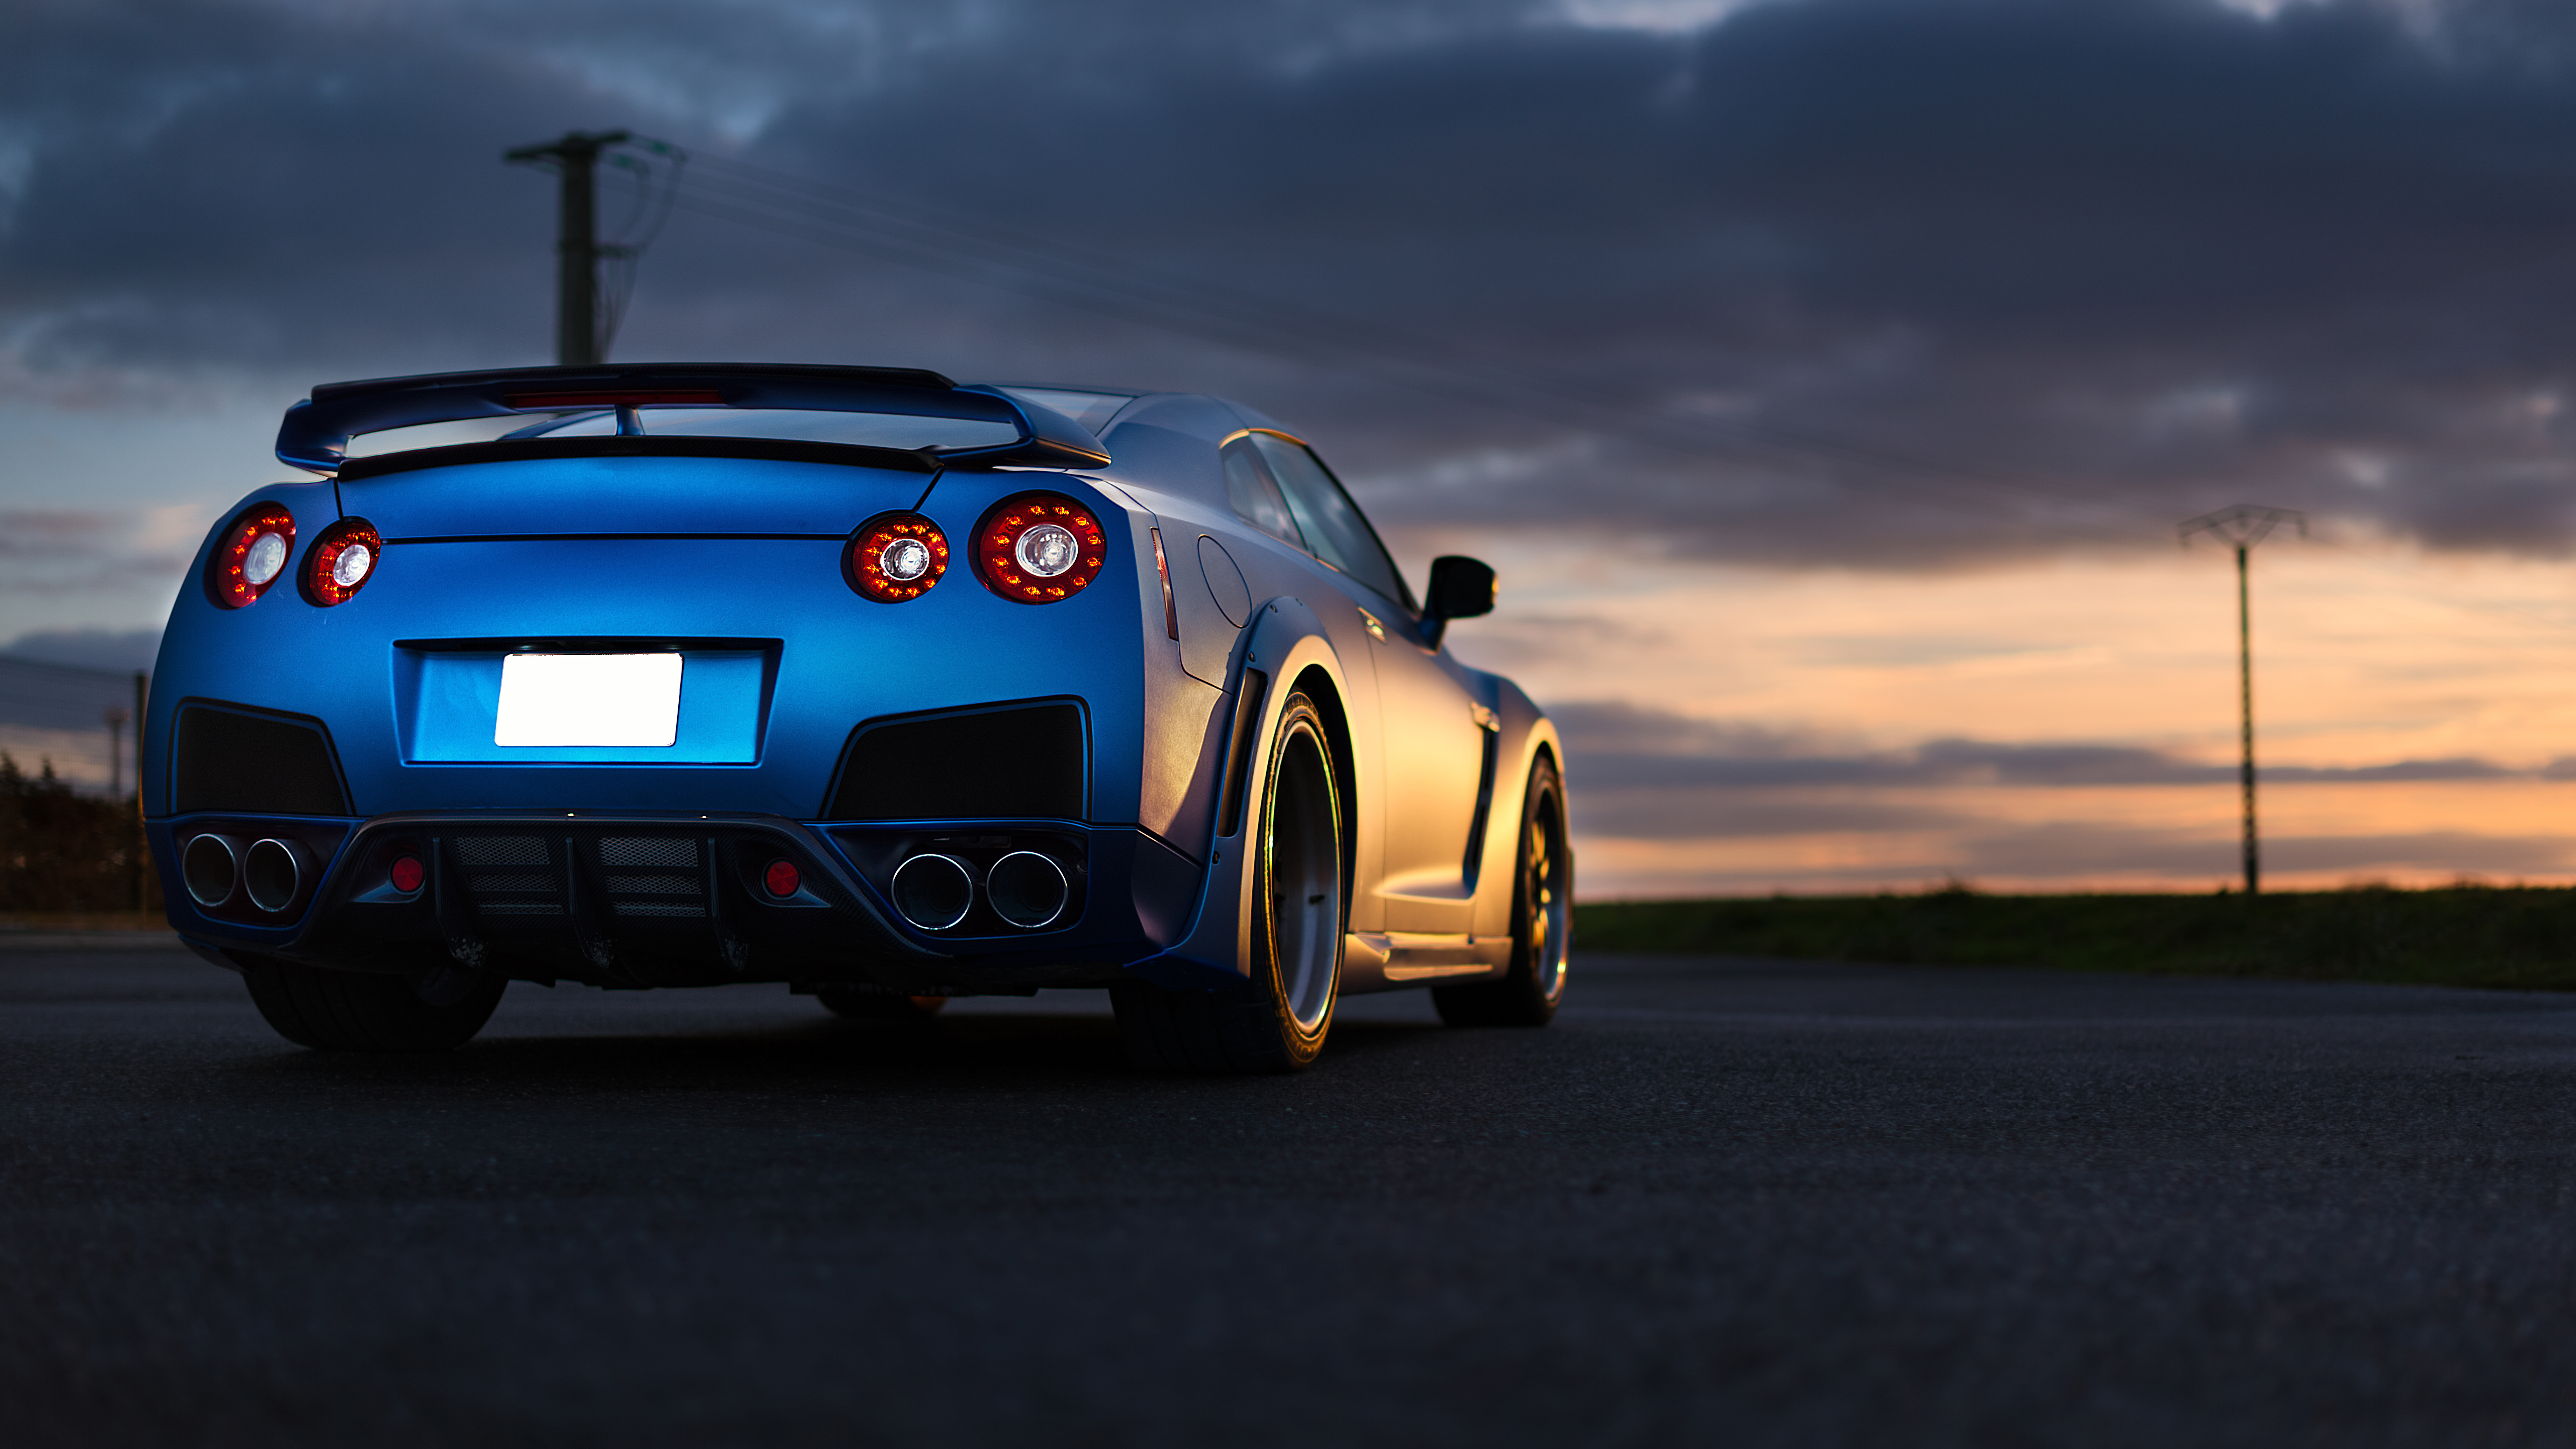 Nissan gtr 8k hd cars 4k wallpapers images backgrounds photos and pictures - Nissan gtr car wallpaper ...